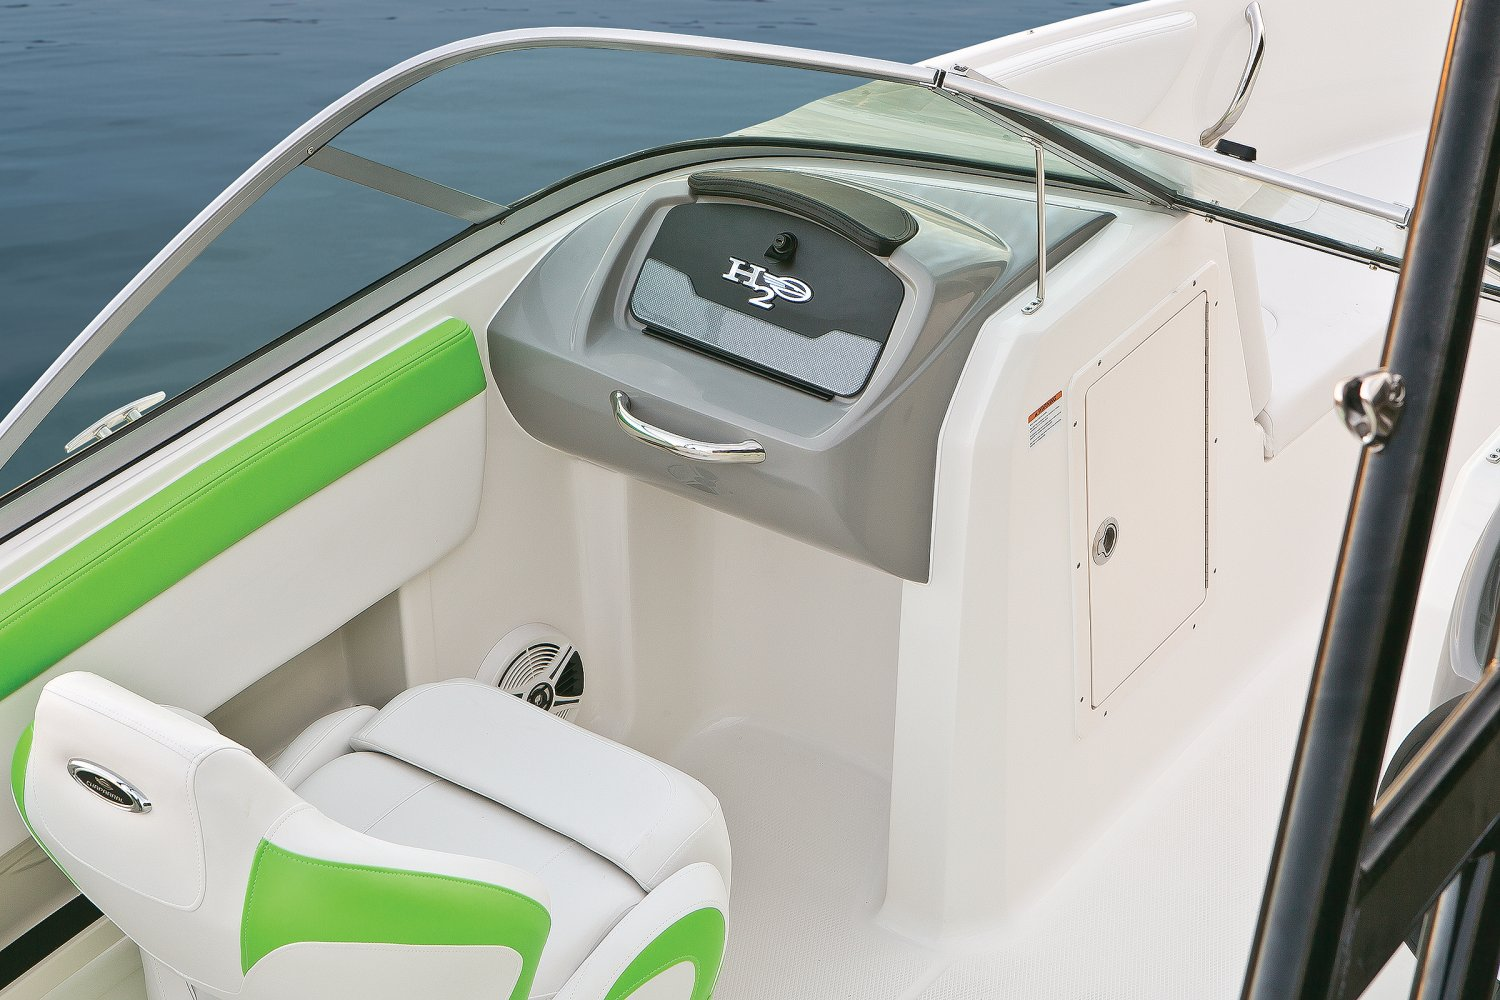 Chaparral Boat Fuse Box Explained Wiring Diagrams 2001 Pontiac Bonneville Located 2018 19 H2o Top Speed